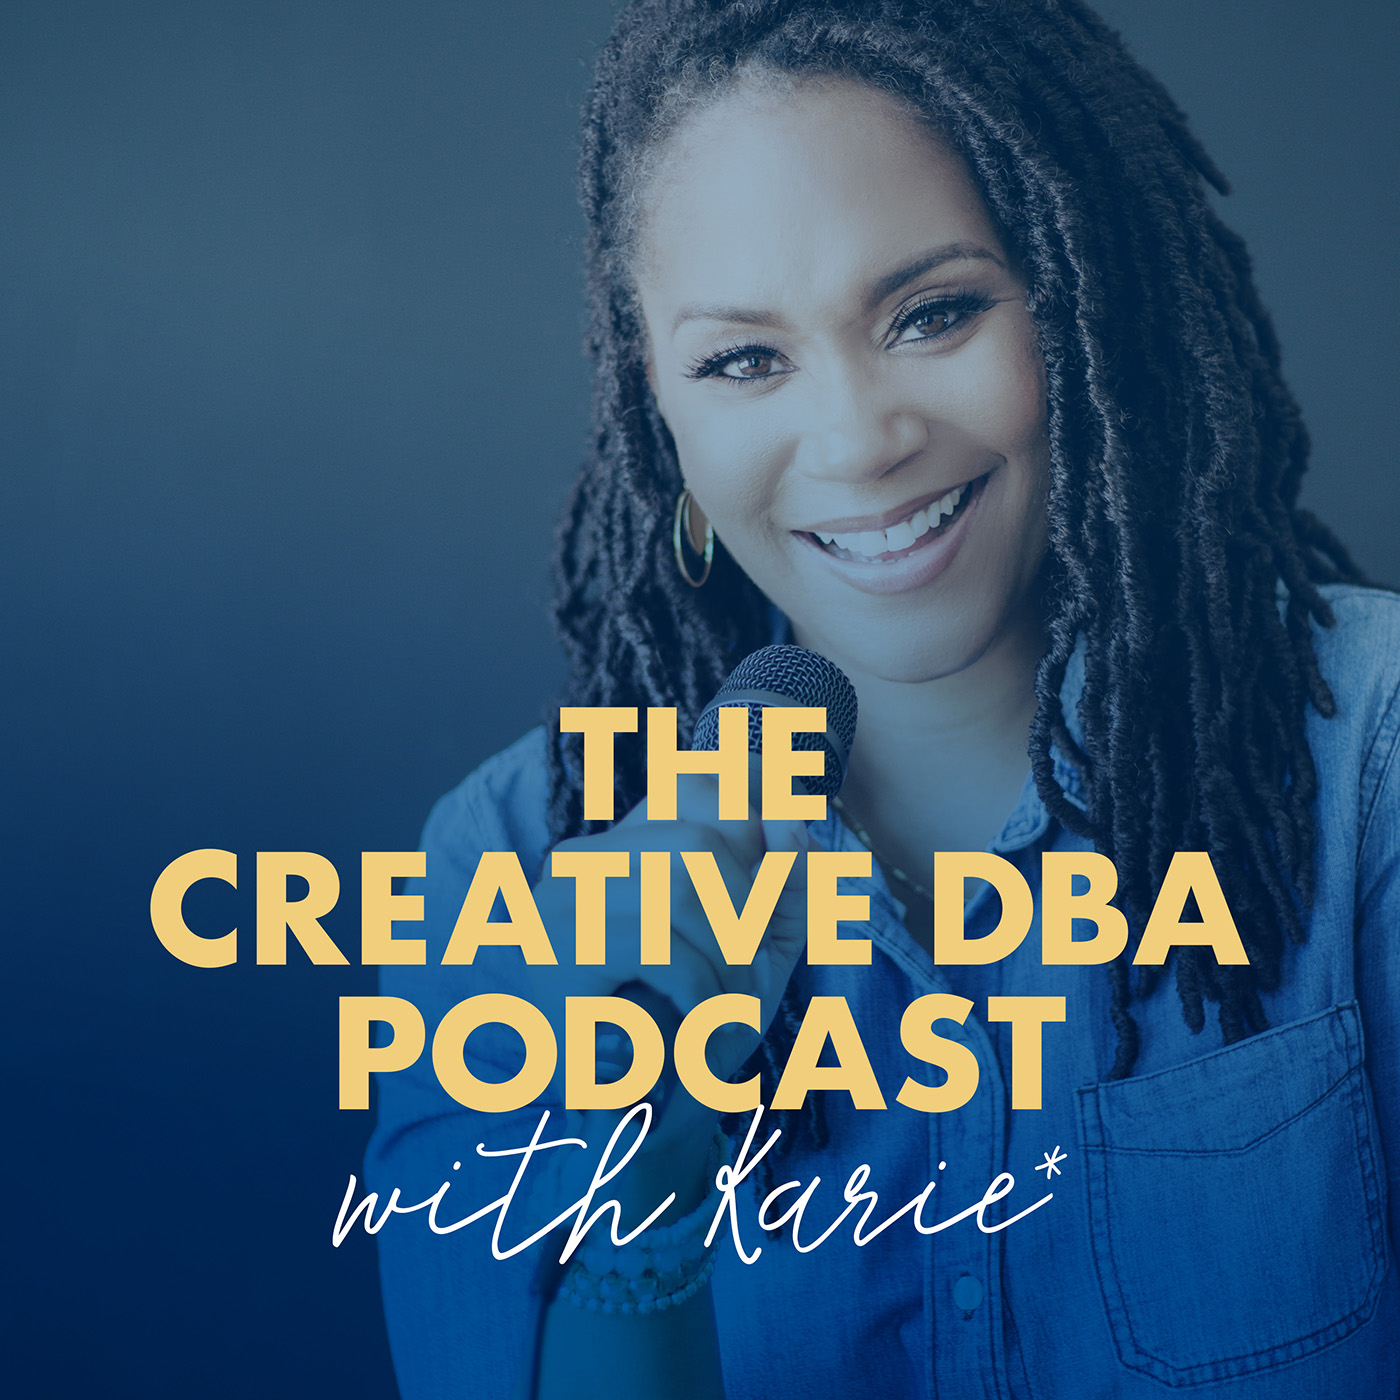 The Creative DBA Podcast with Karie